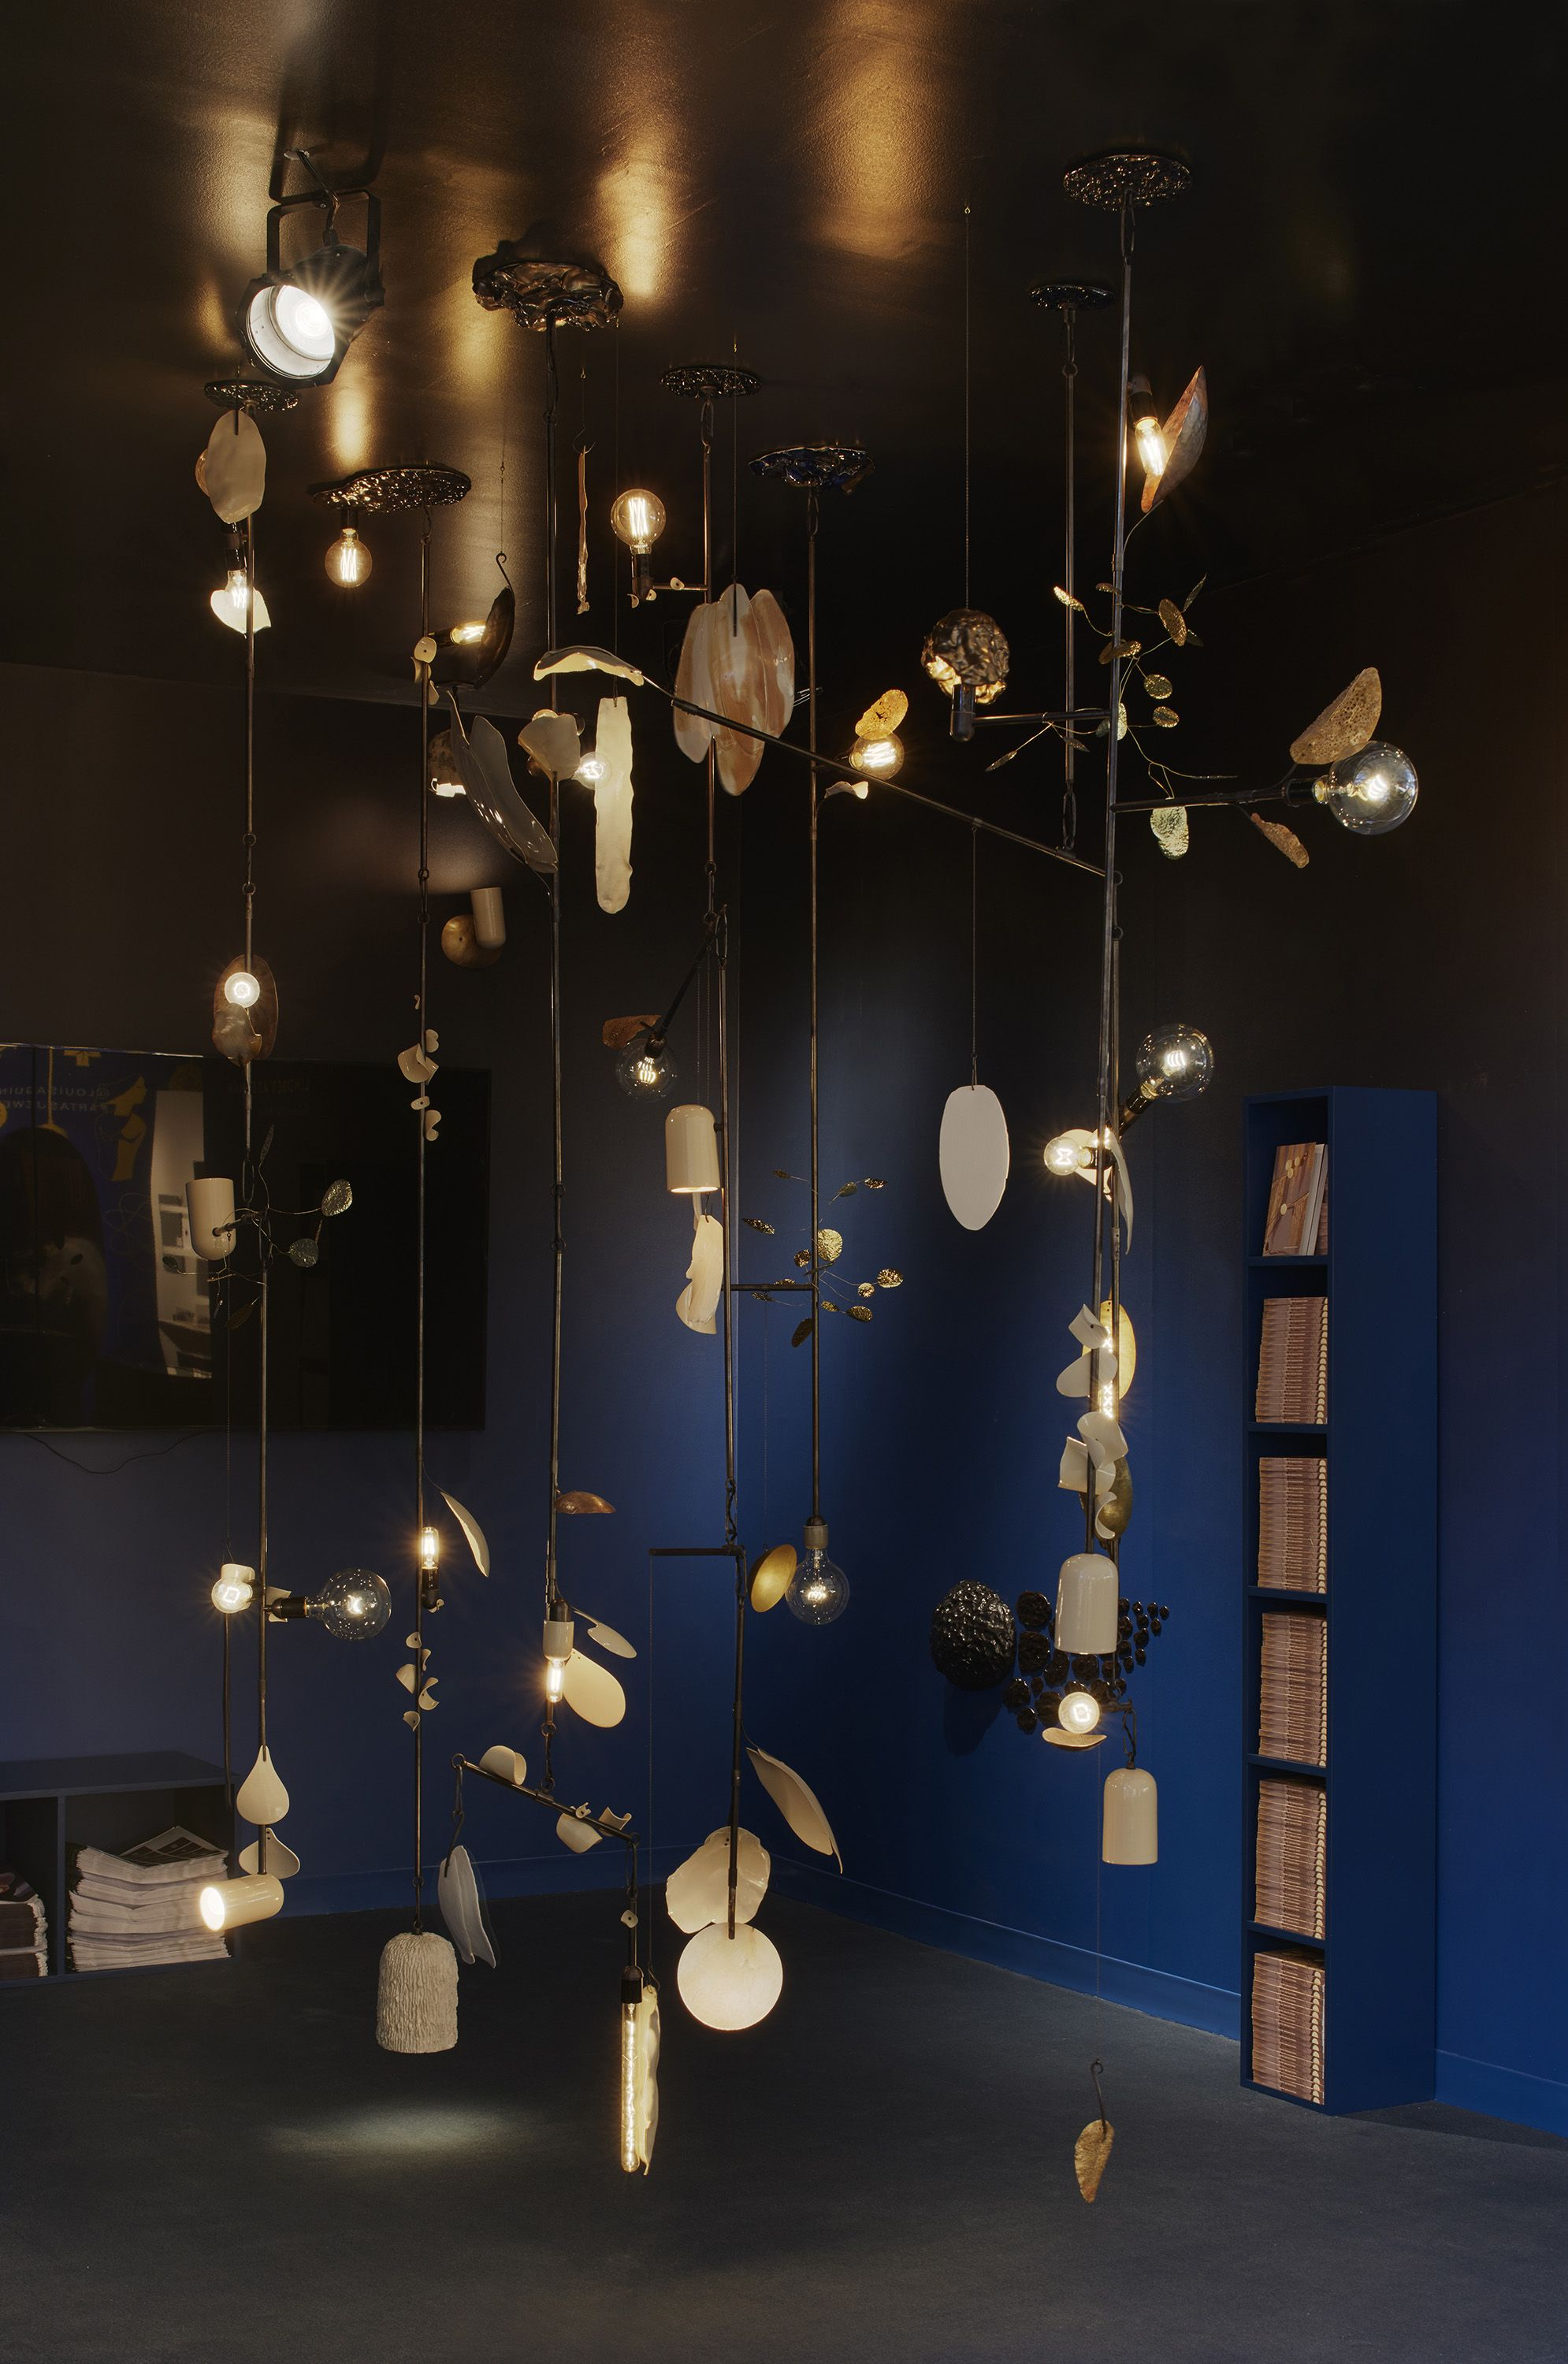 Aurora Well Installed At Lindsey Adelmans Booth At Design Miami - Alotof-design-group-wins-admirers-at-salonesatellite-show